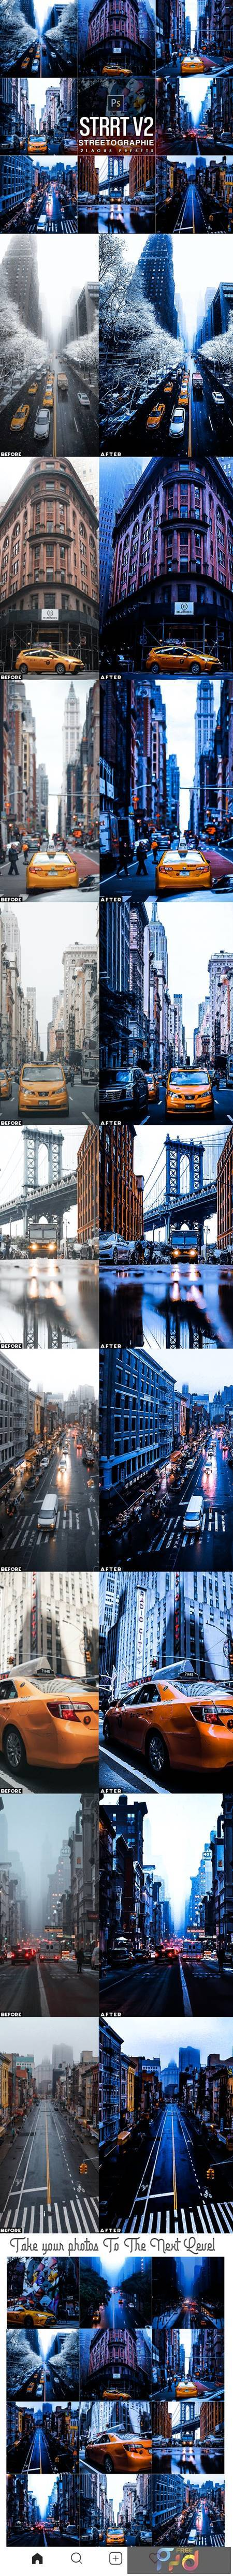 Streetographie V2 - Cinematic Photoshop Actions 29137648 1